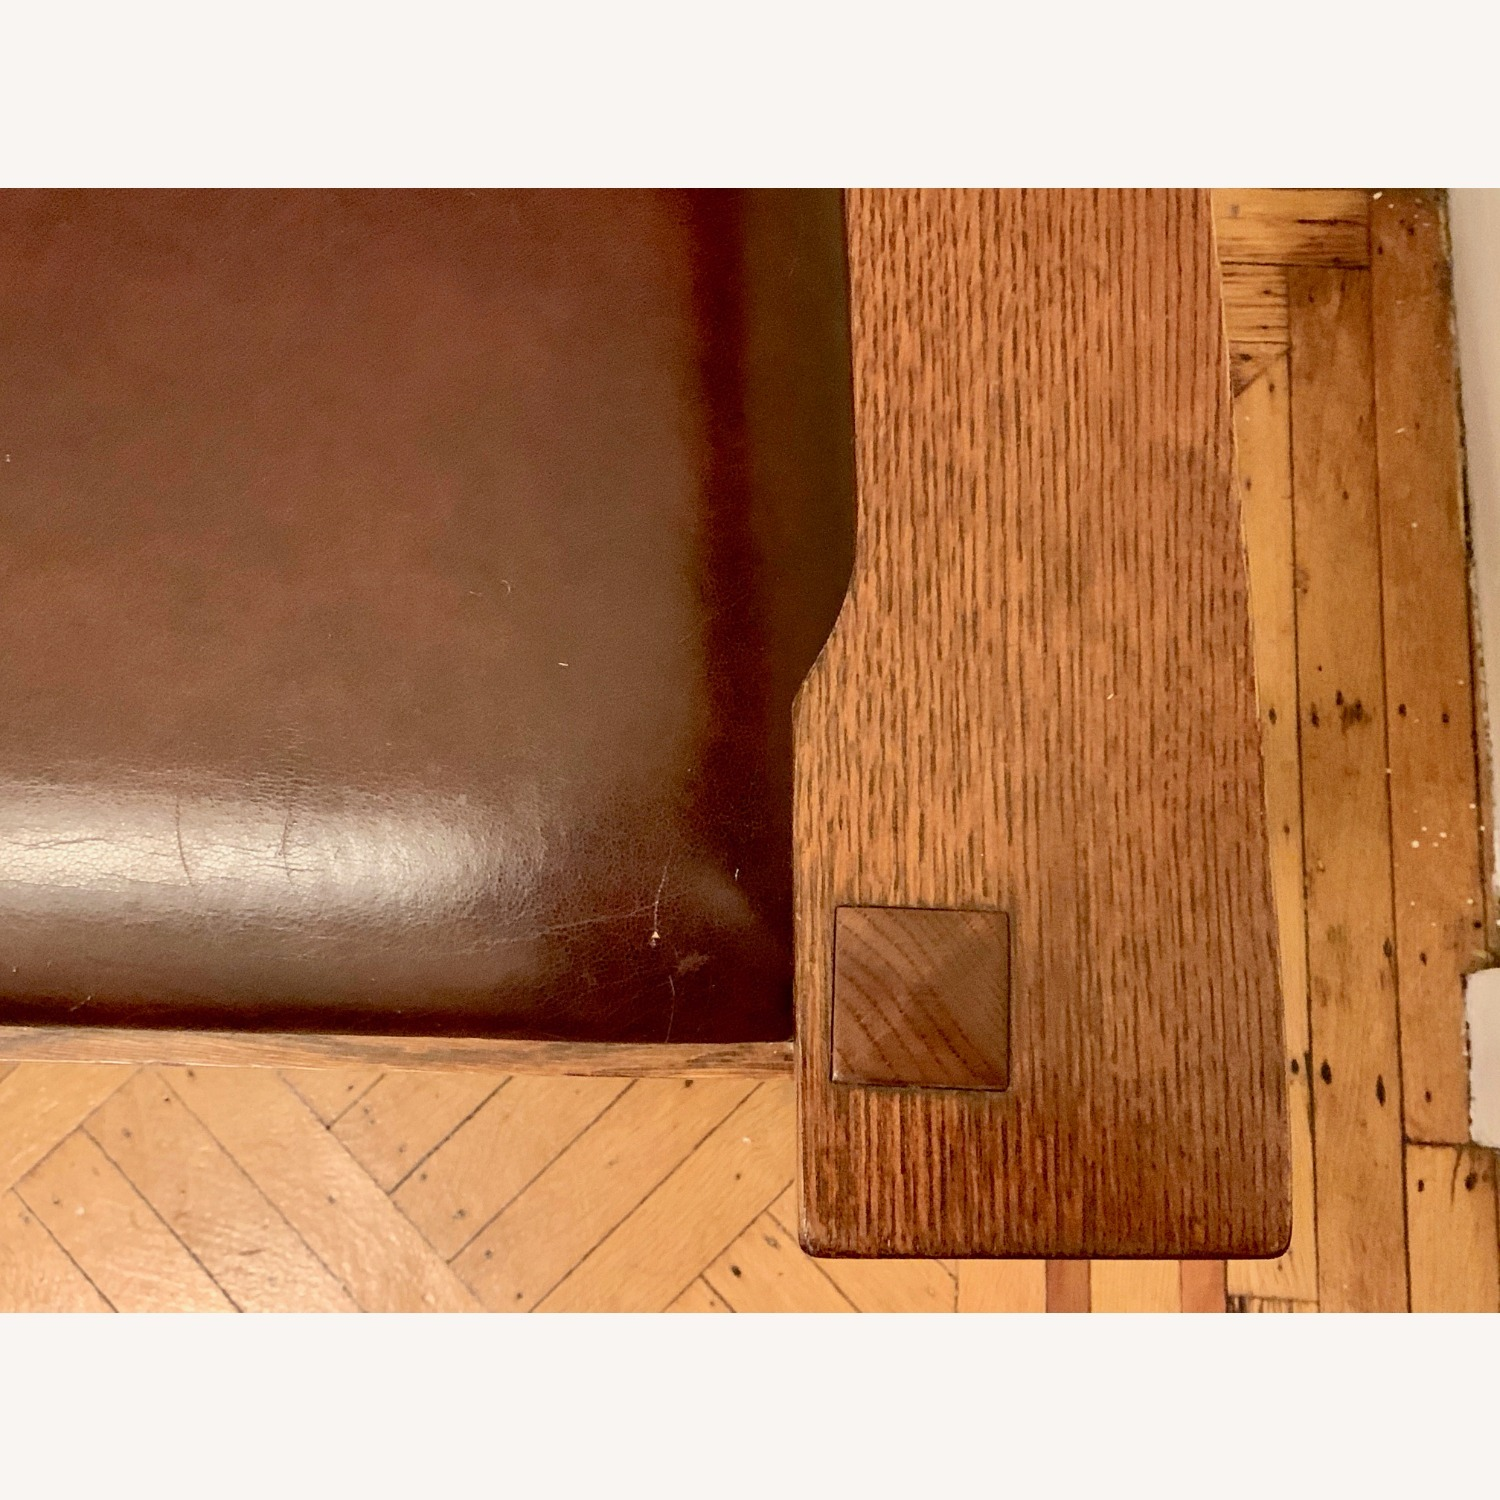 Stickley Mission Oak Chair with Leather Seat - image-2